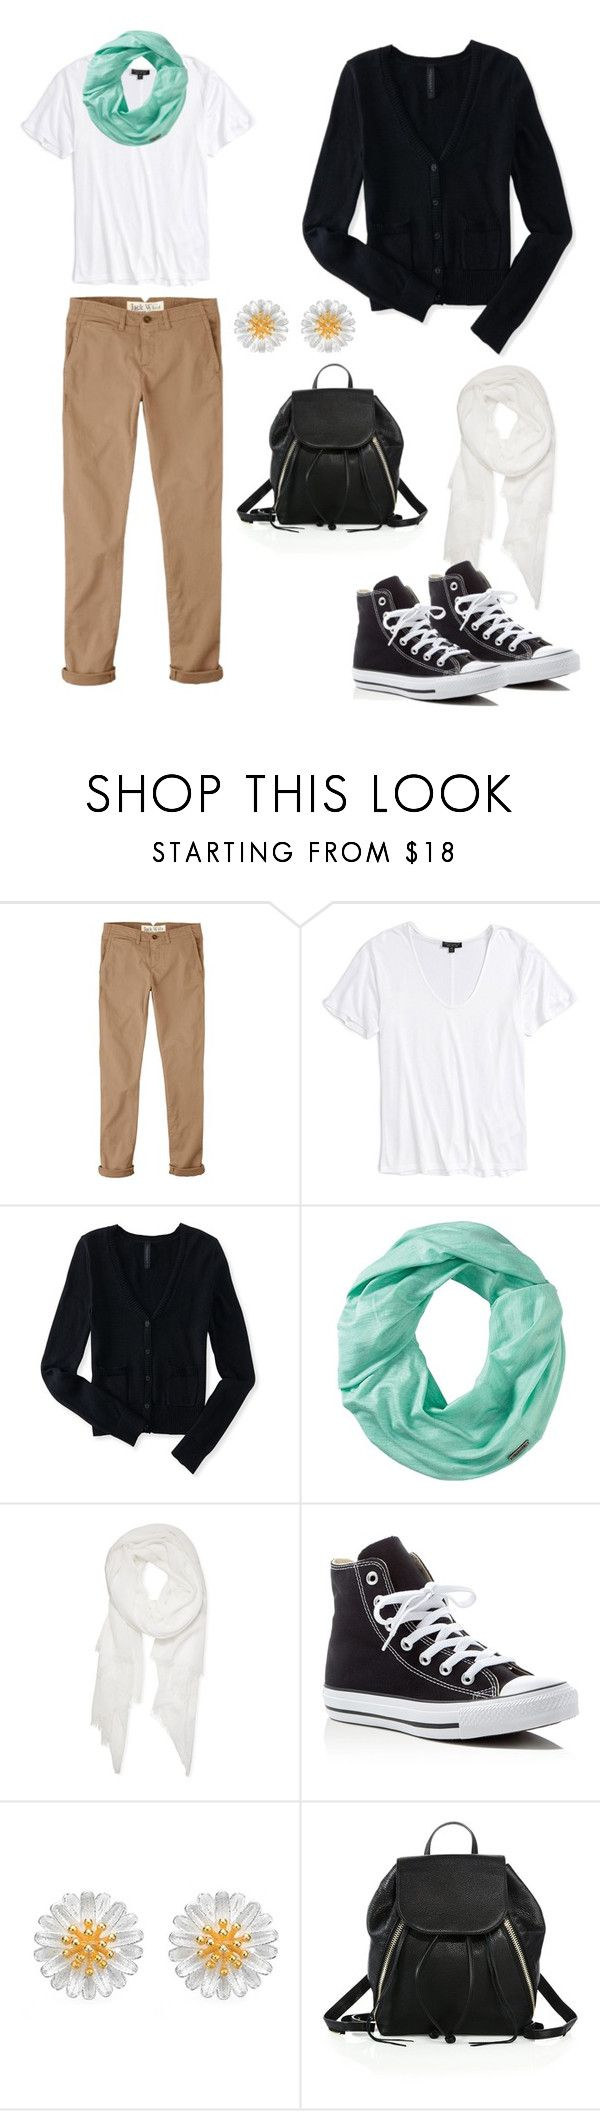 """""""бежевые джинсы"""" by anjasha ❤ liked on Polyvore featuring Jack Wills, Topshop, Aéropostale, Smartwool, Calvin Klein, Converse and Rebecca Minkoff"""